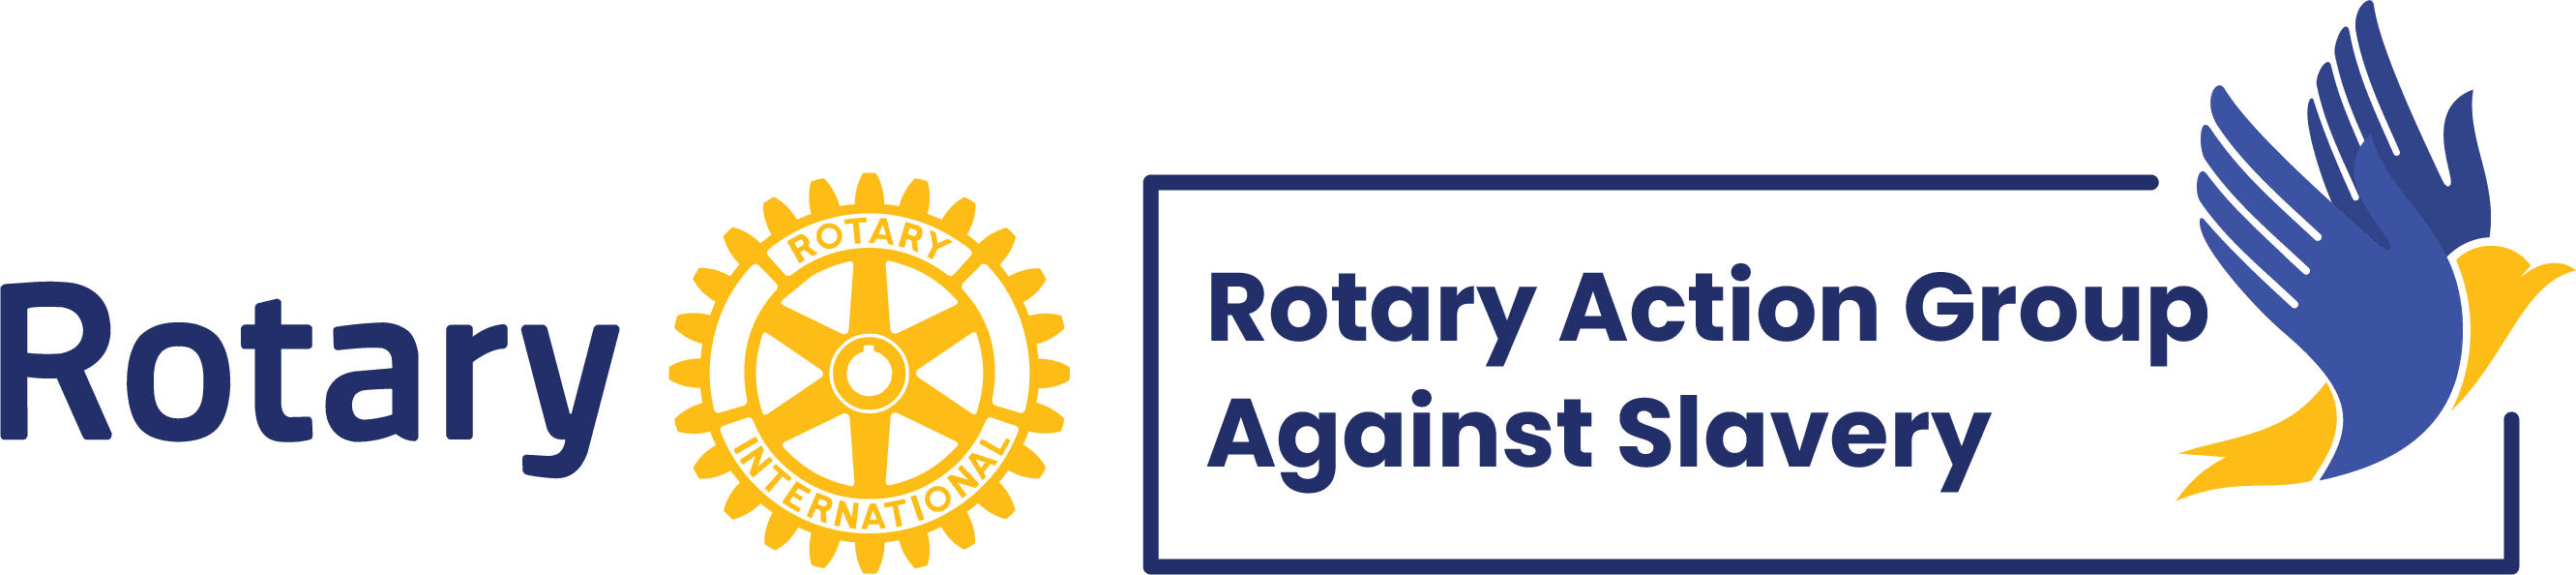 Rotary Action Group Against Slavery